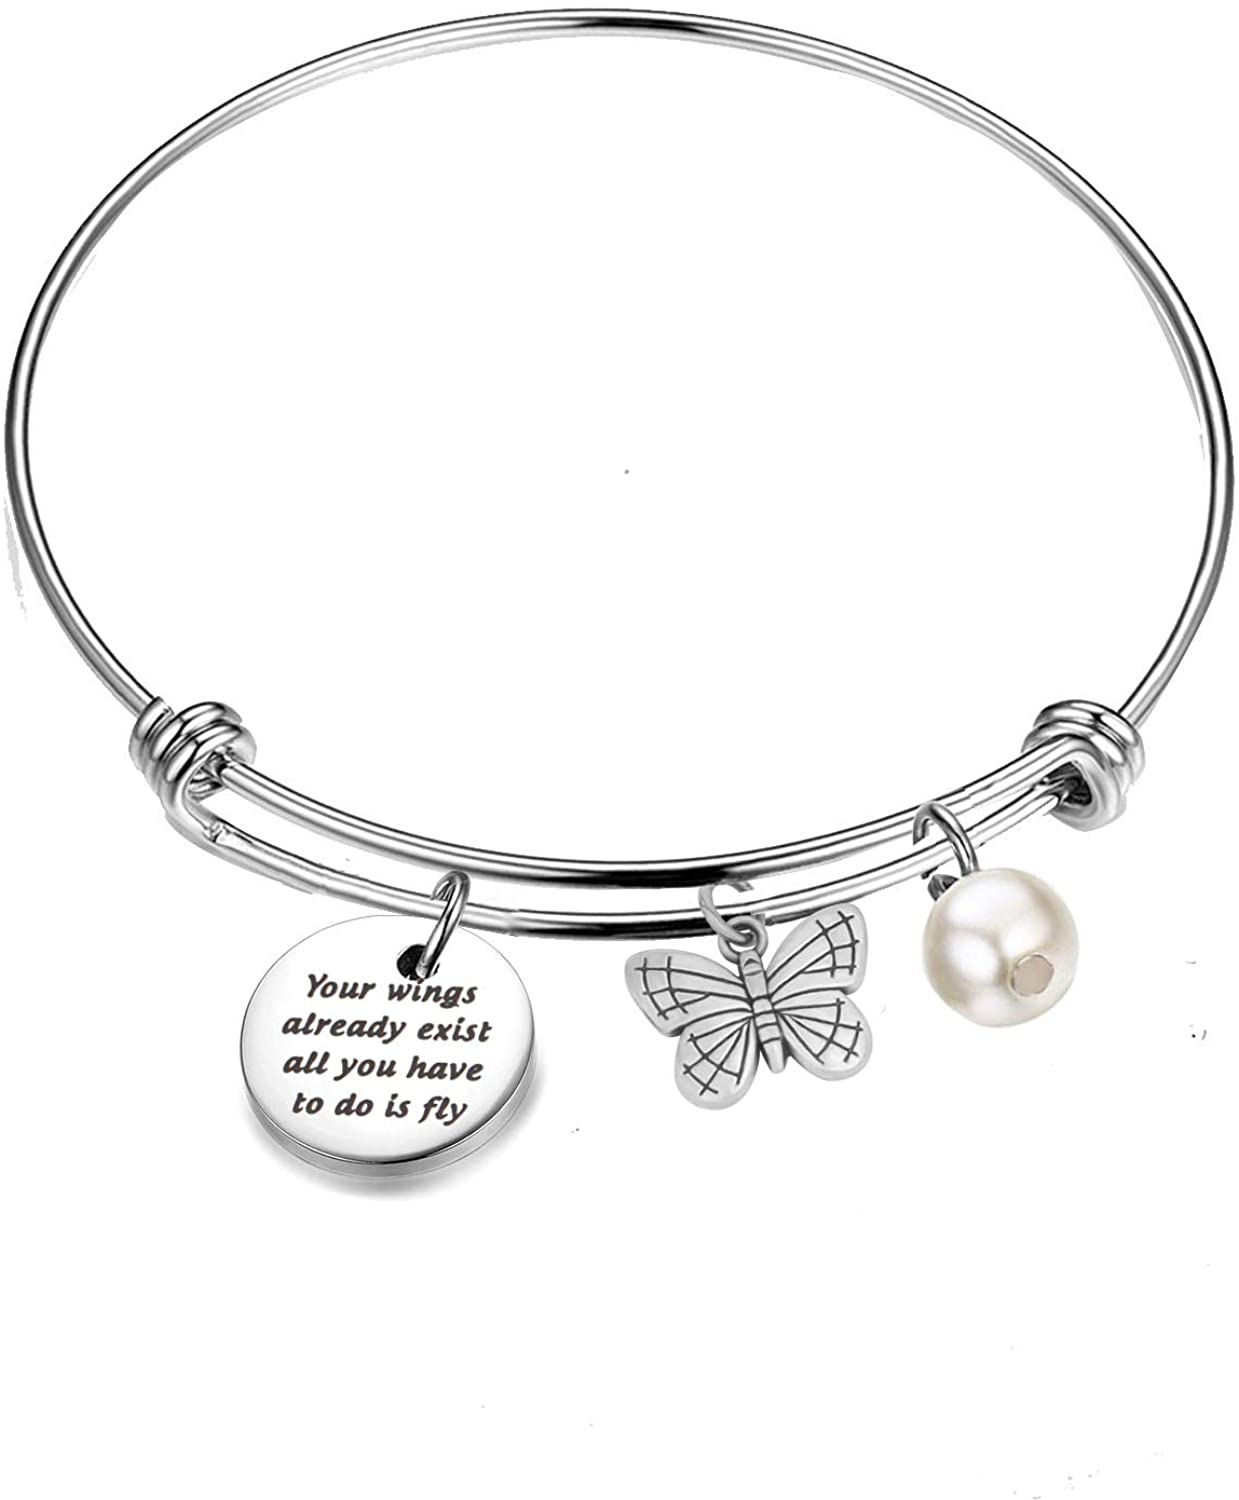 AKTAP Inspirational Bracalets Butterfly Charm Bangle Bracelet Your Wings Already Exist All You Have to Do is Fly Graduation Gift